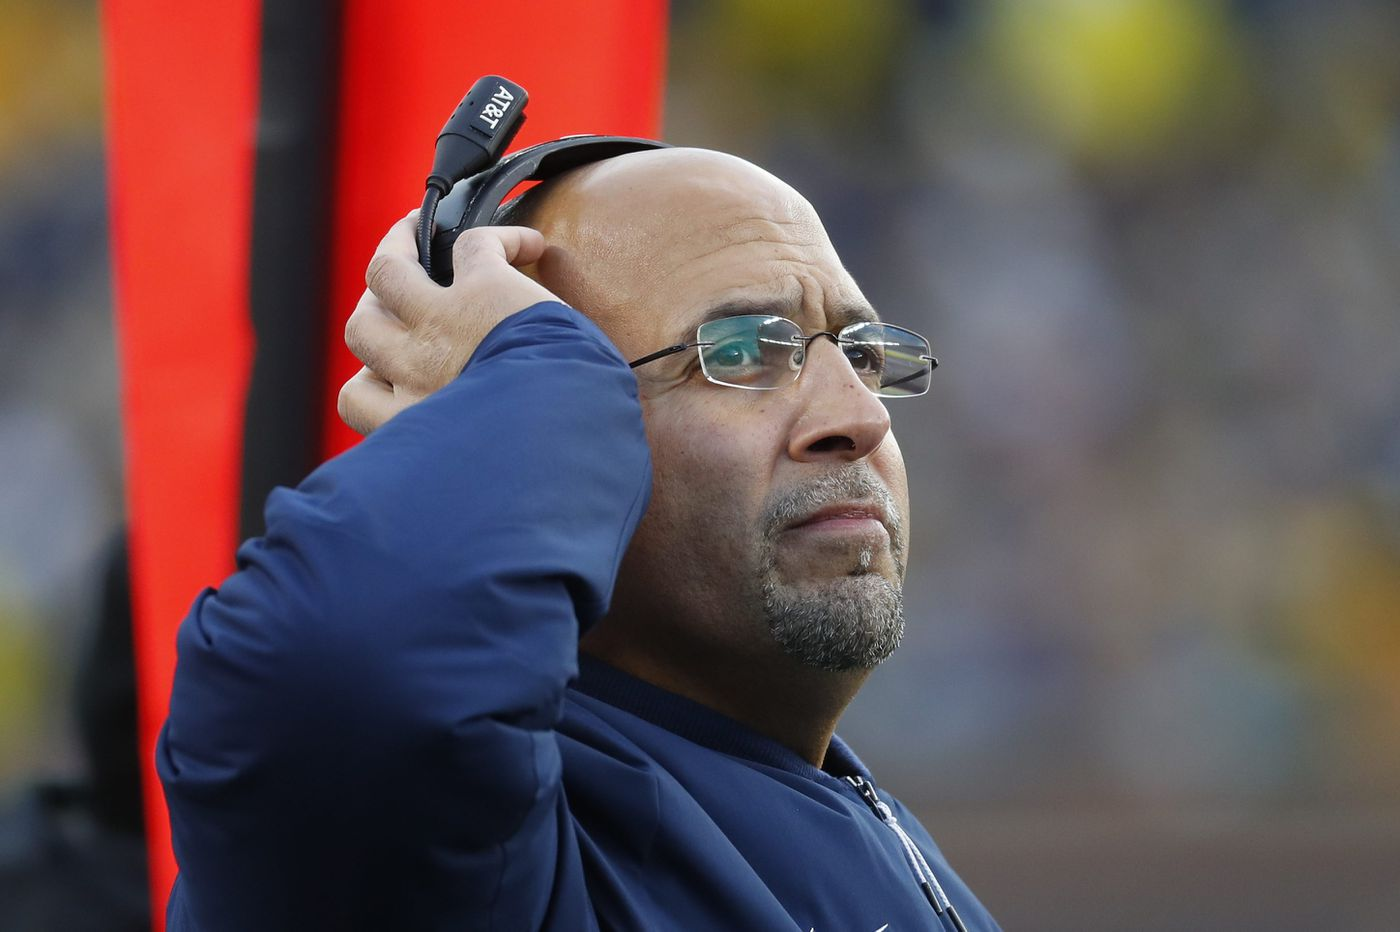 Penn State coach James Franklin addresses USC speculation, doesn't say if he'd be a candidate